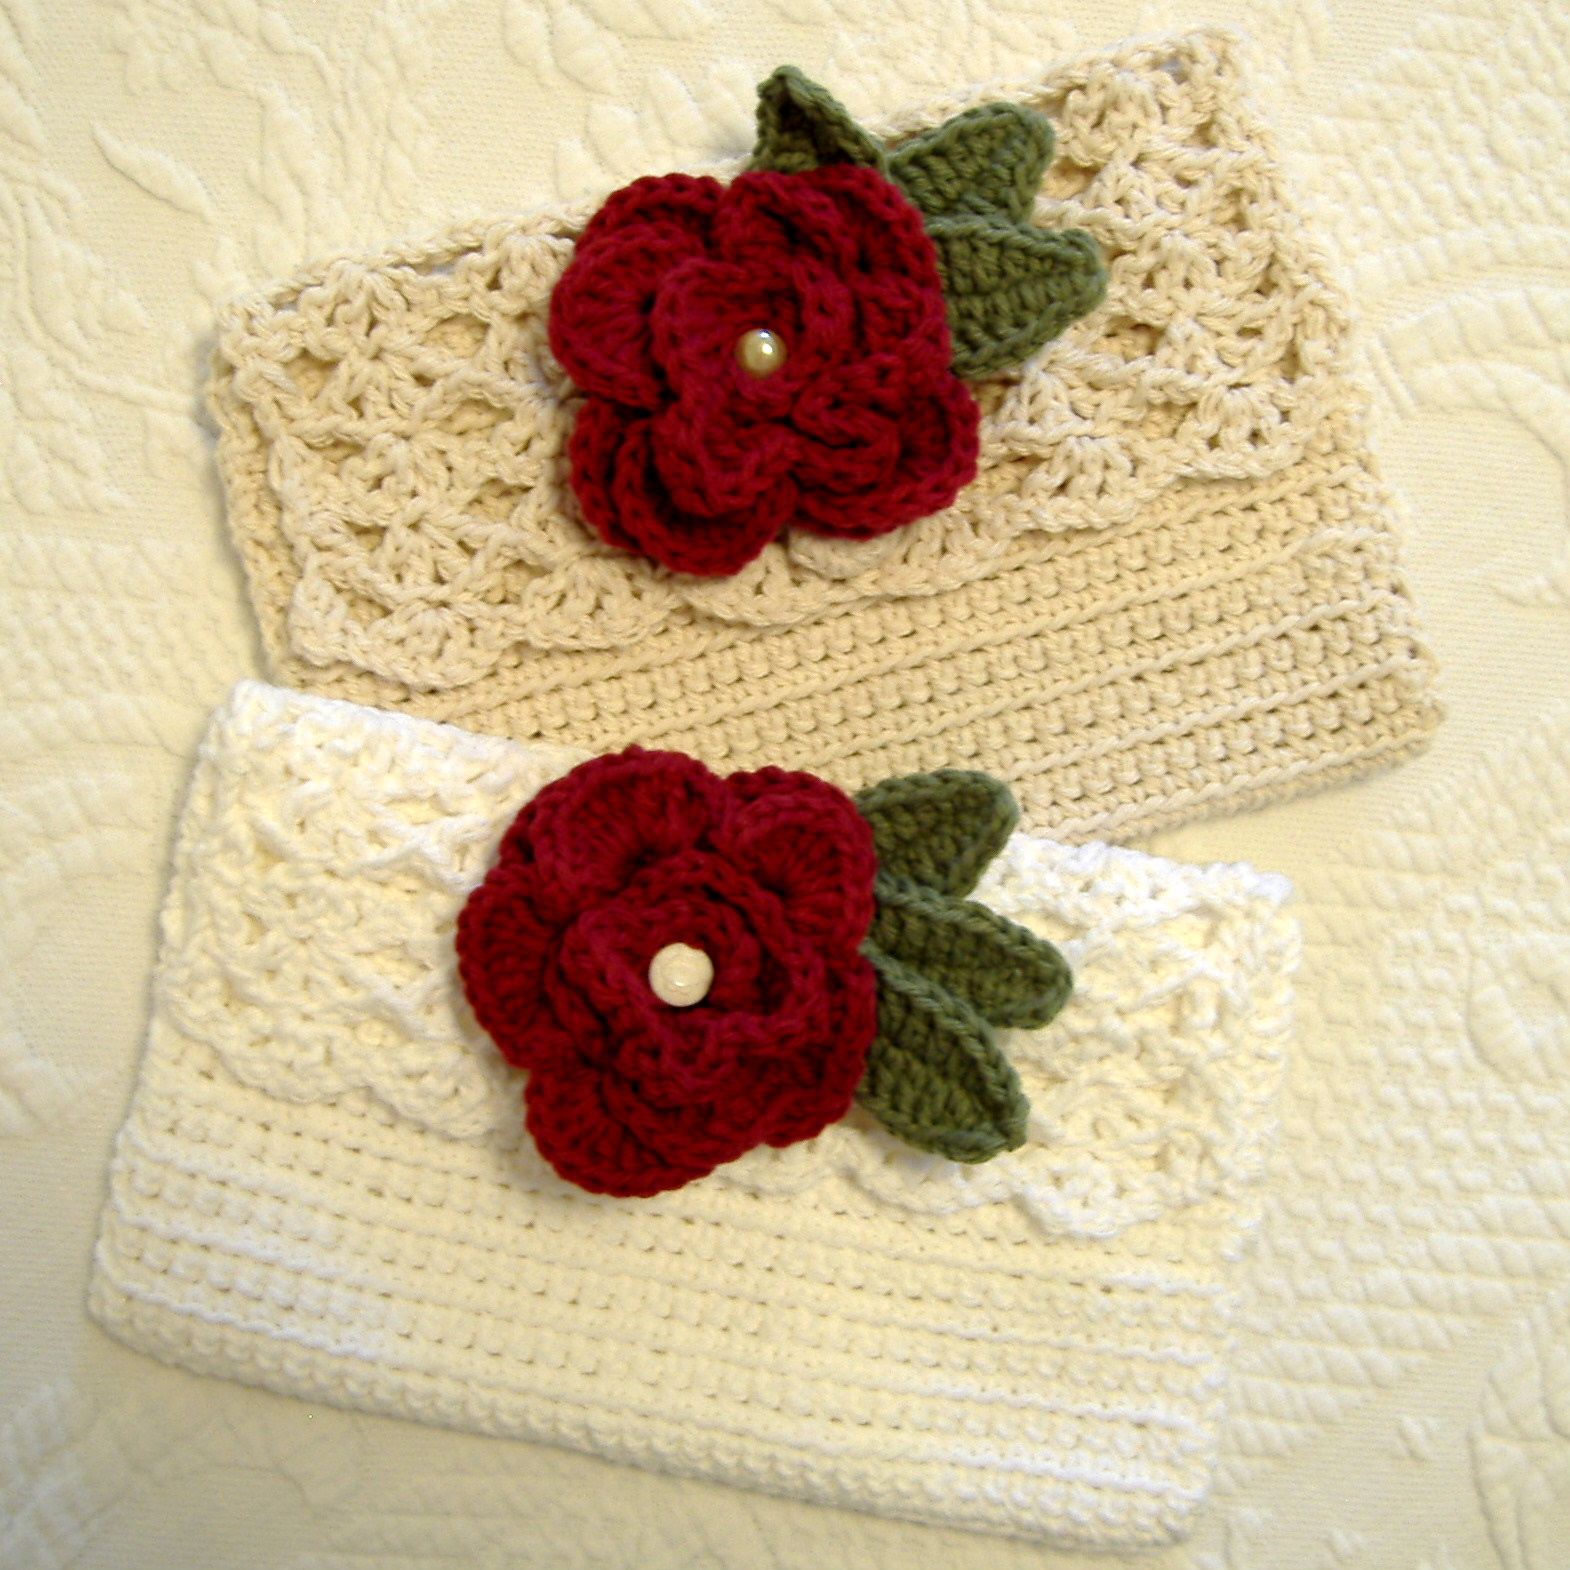 Crochet Patterns Purses : CROCHET PATTERNS PURSES ? Patterns